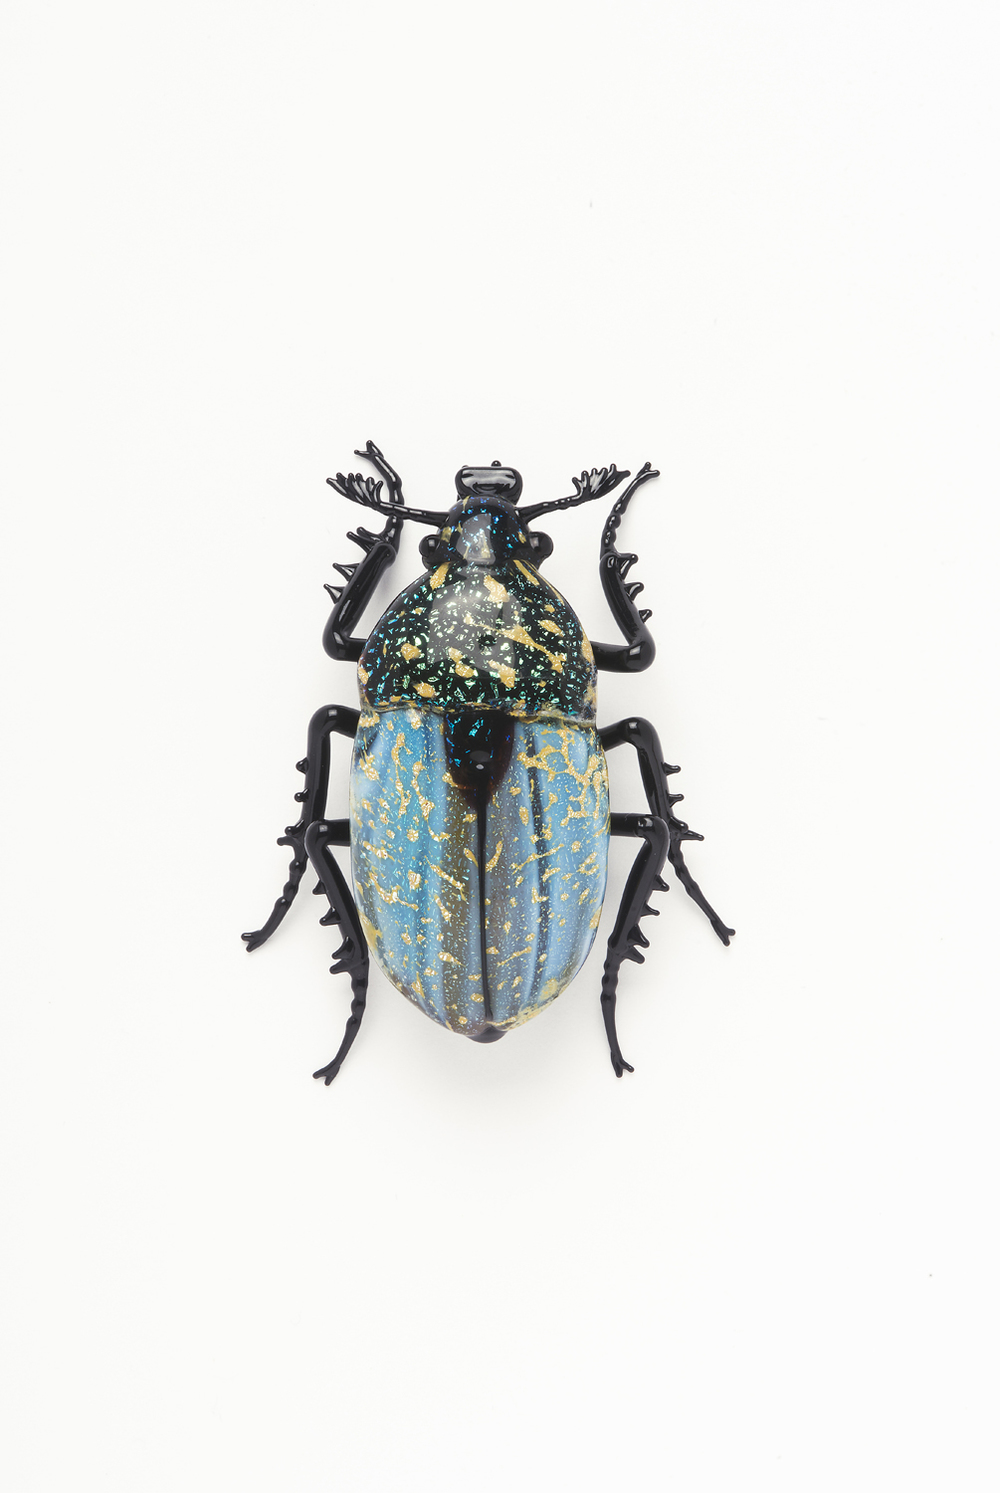 "Vittorio Costantini,  Family: Chrysomelidae, ""Chrysochus Auratus""  (2005, soda-lime glass, 1 3/4 x 1 7/16 x 5/8 inches), VC.2"